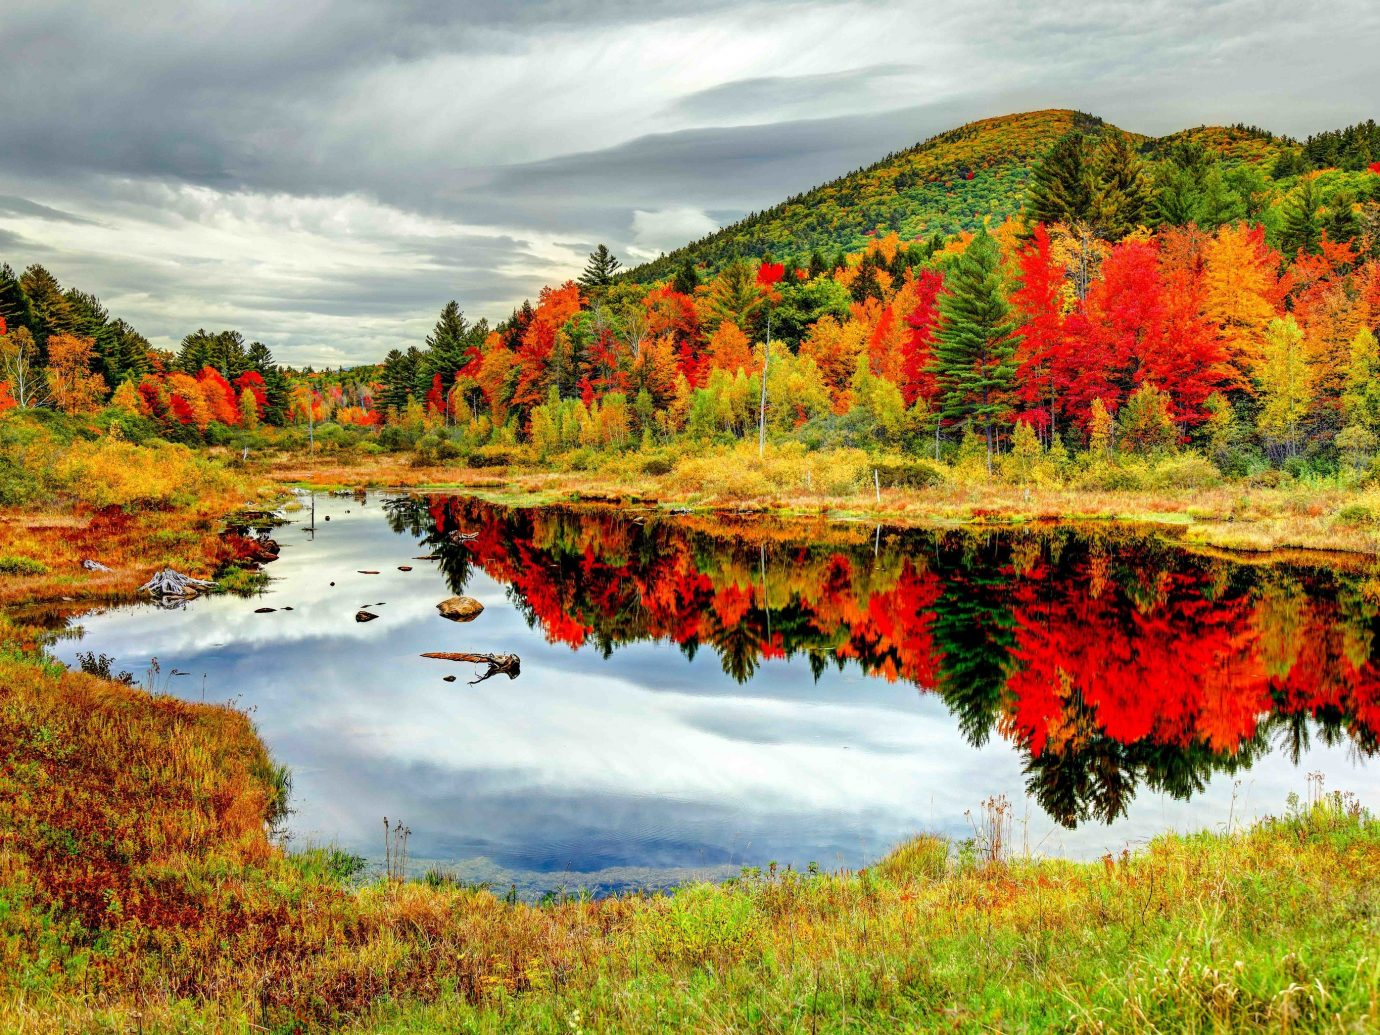 Amazing Places for Camping in the United States